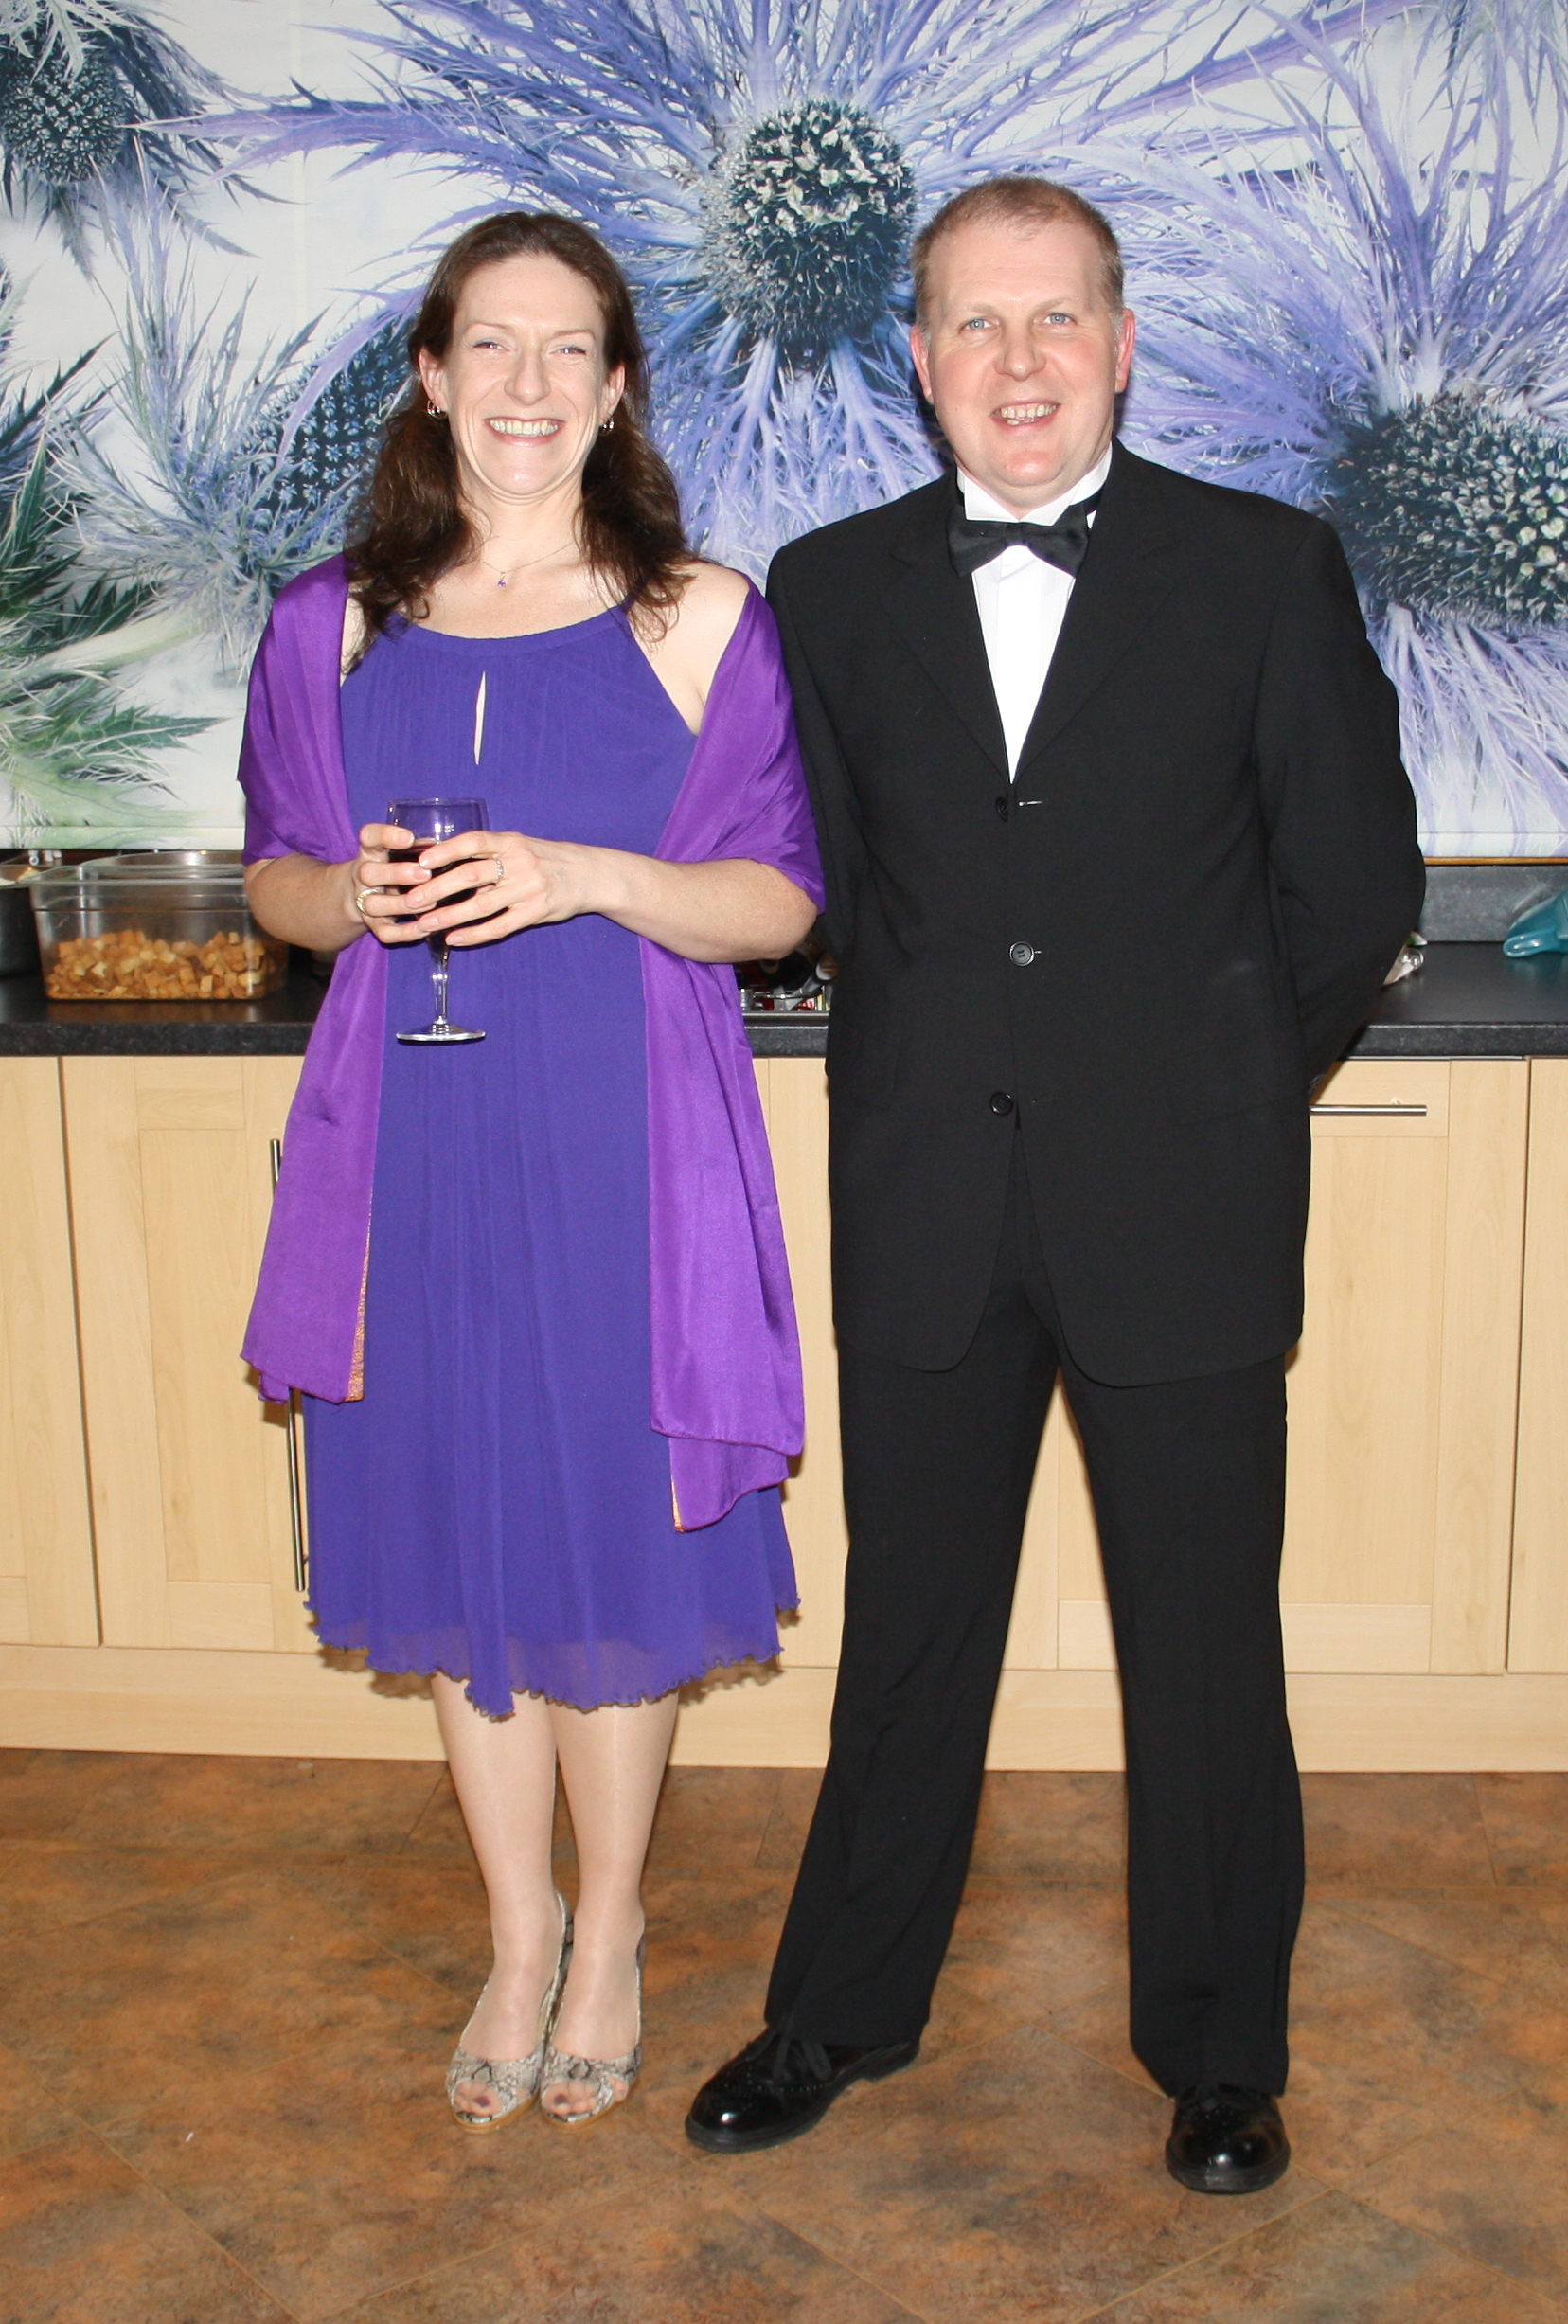 A Hogmanay Dinner Party with James Bond – Fiona Robertson